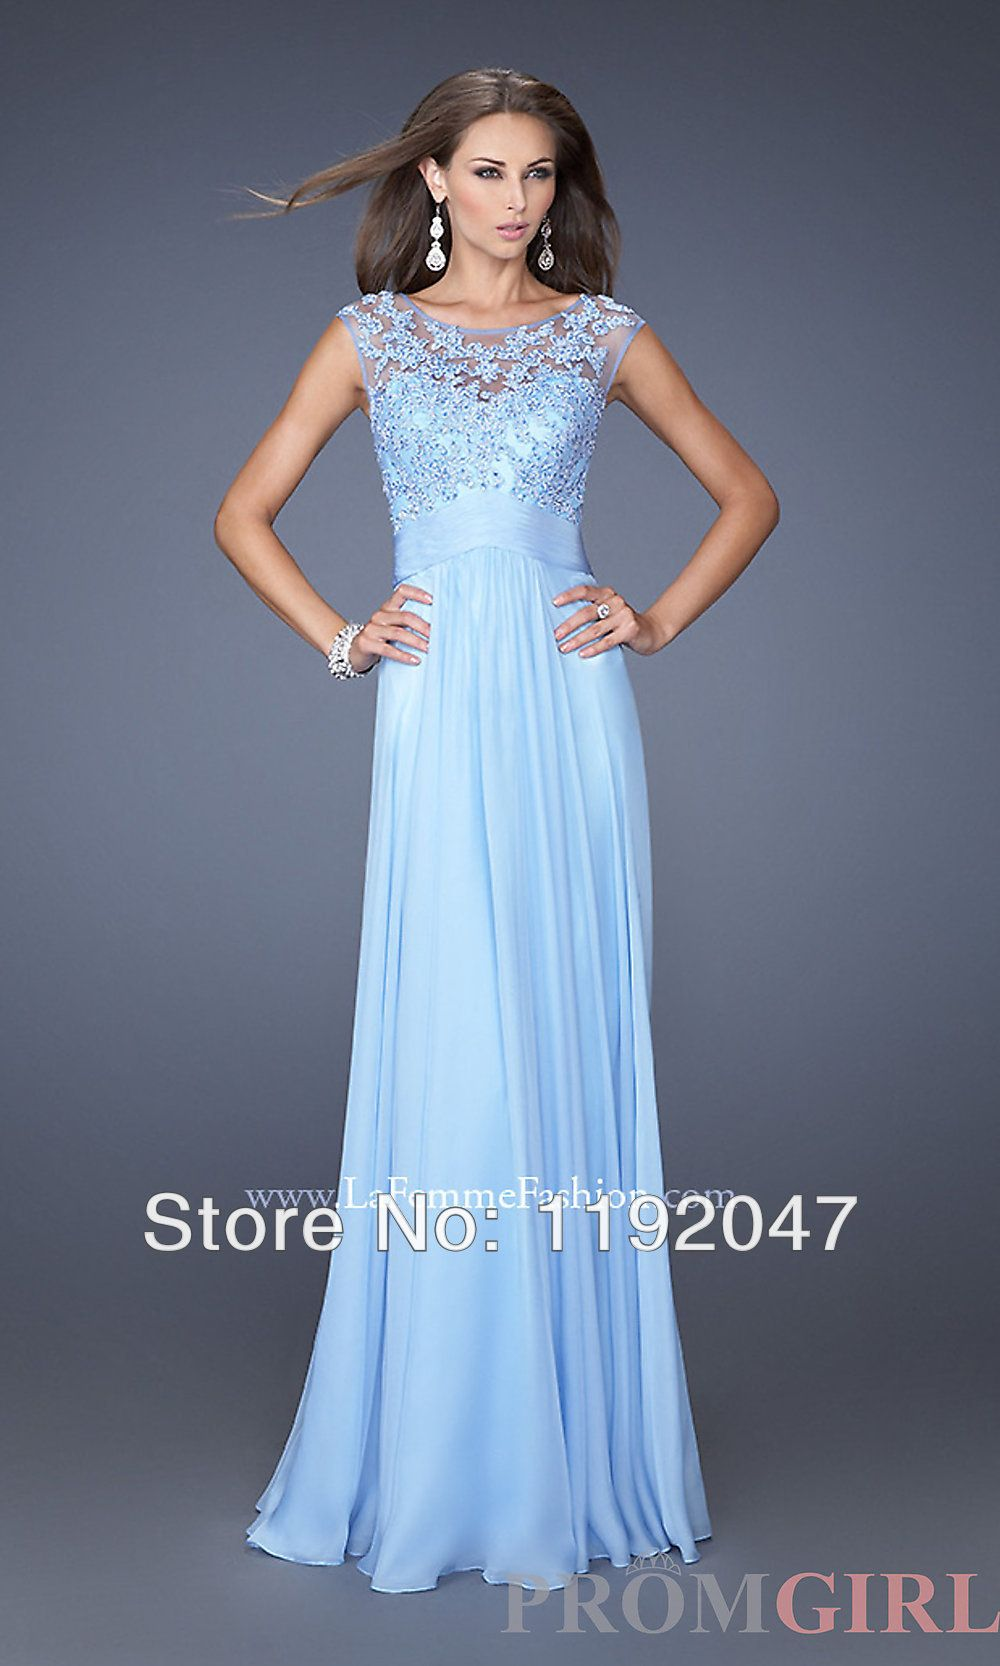 Elegant light blue color lace appliques floor length long prom